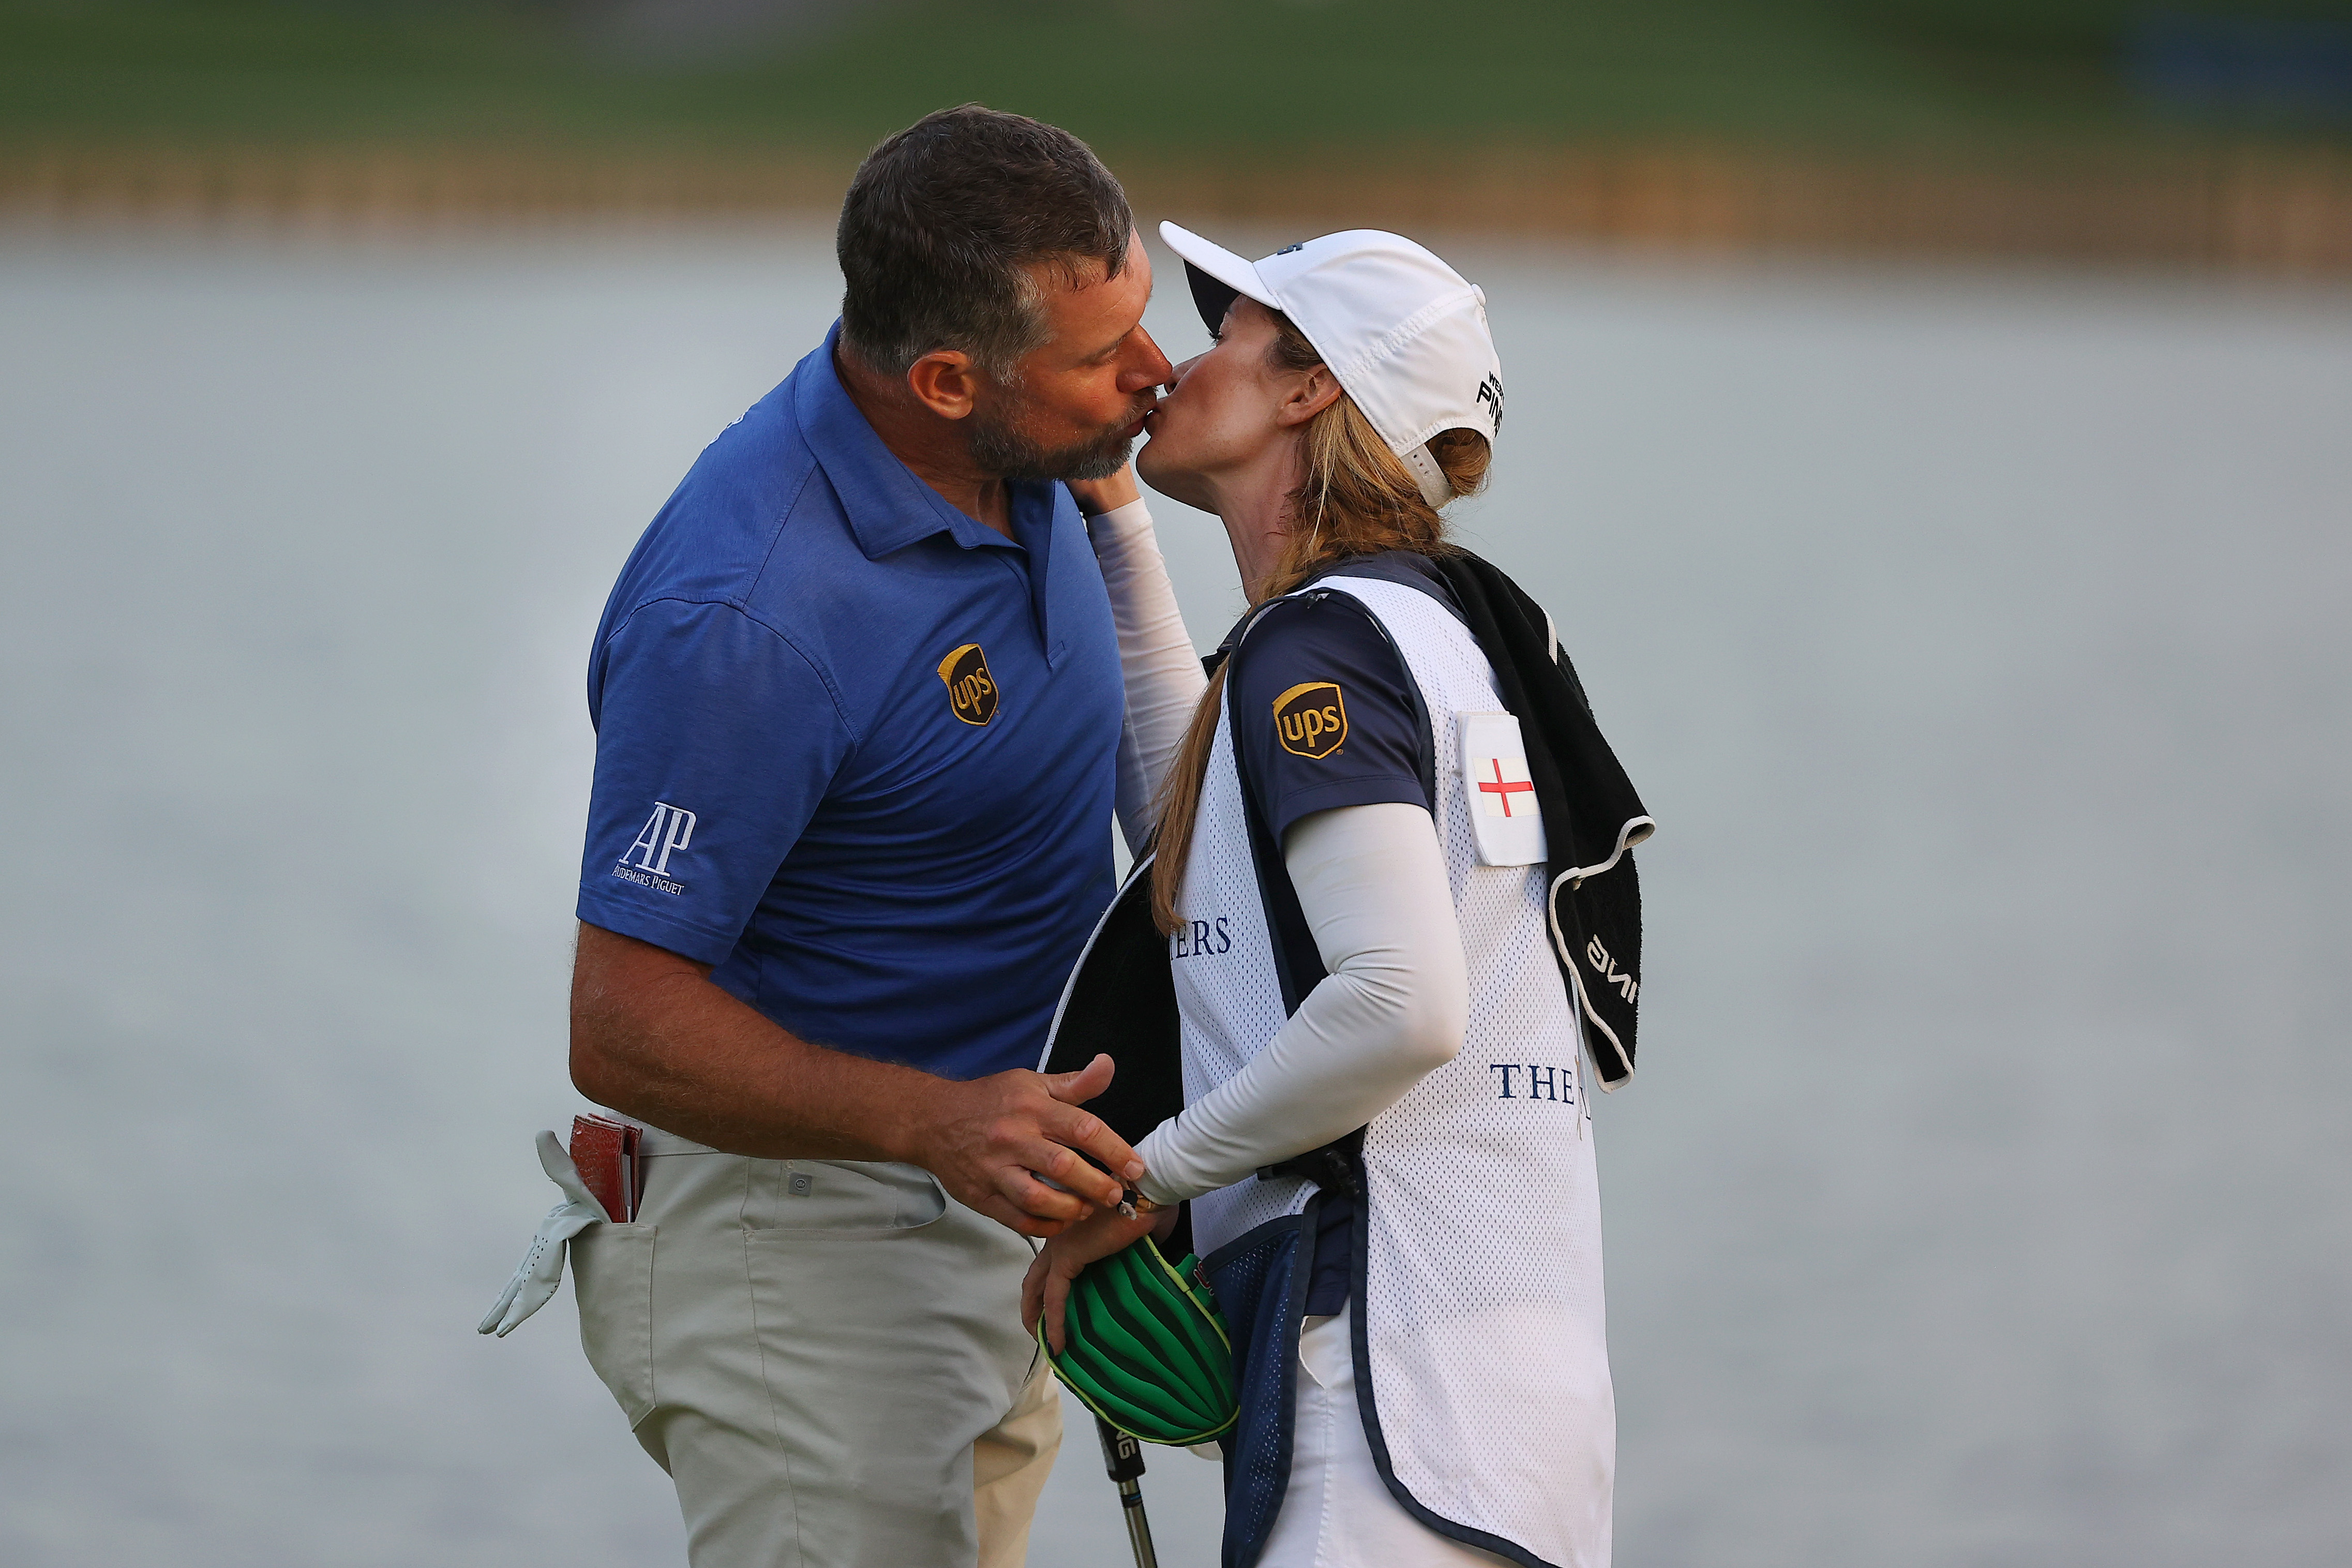 Lee Westwood kisses his caddie and partner Helen Storey after the 2021 PLAYERS Championship